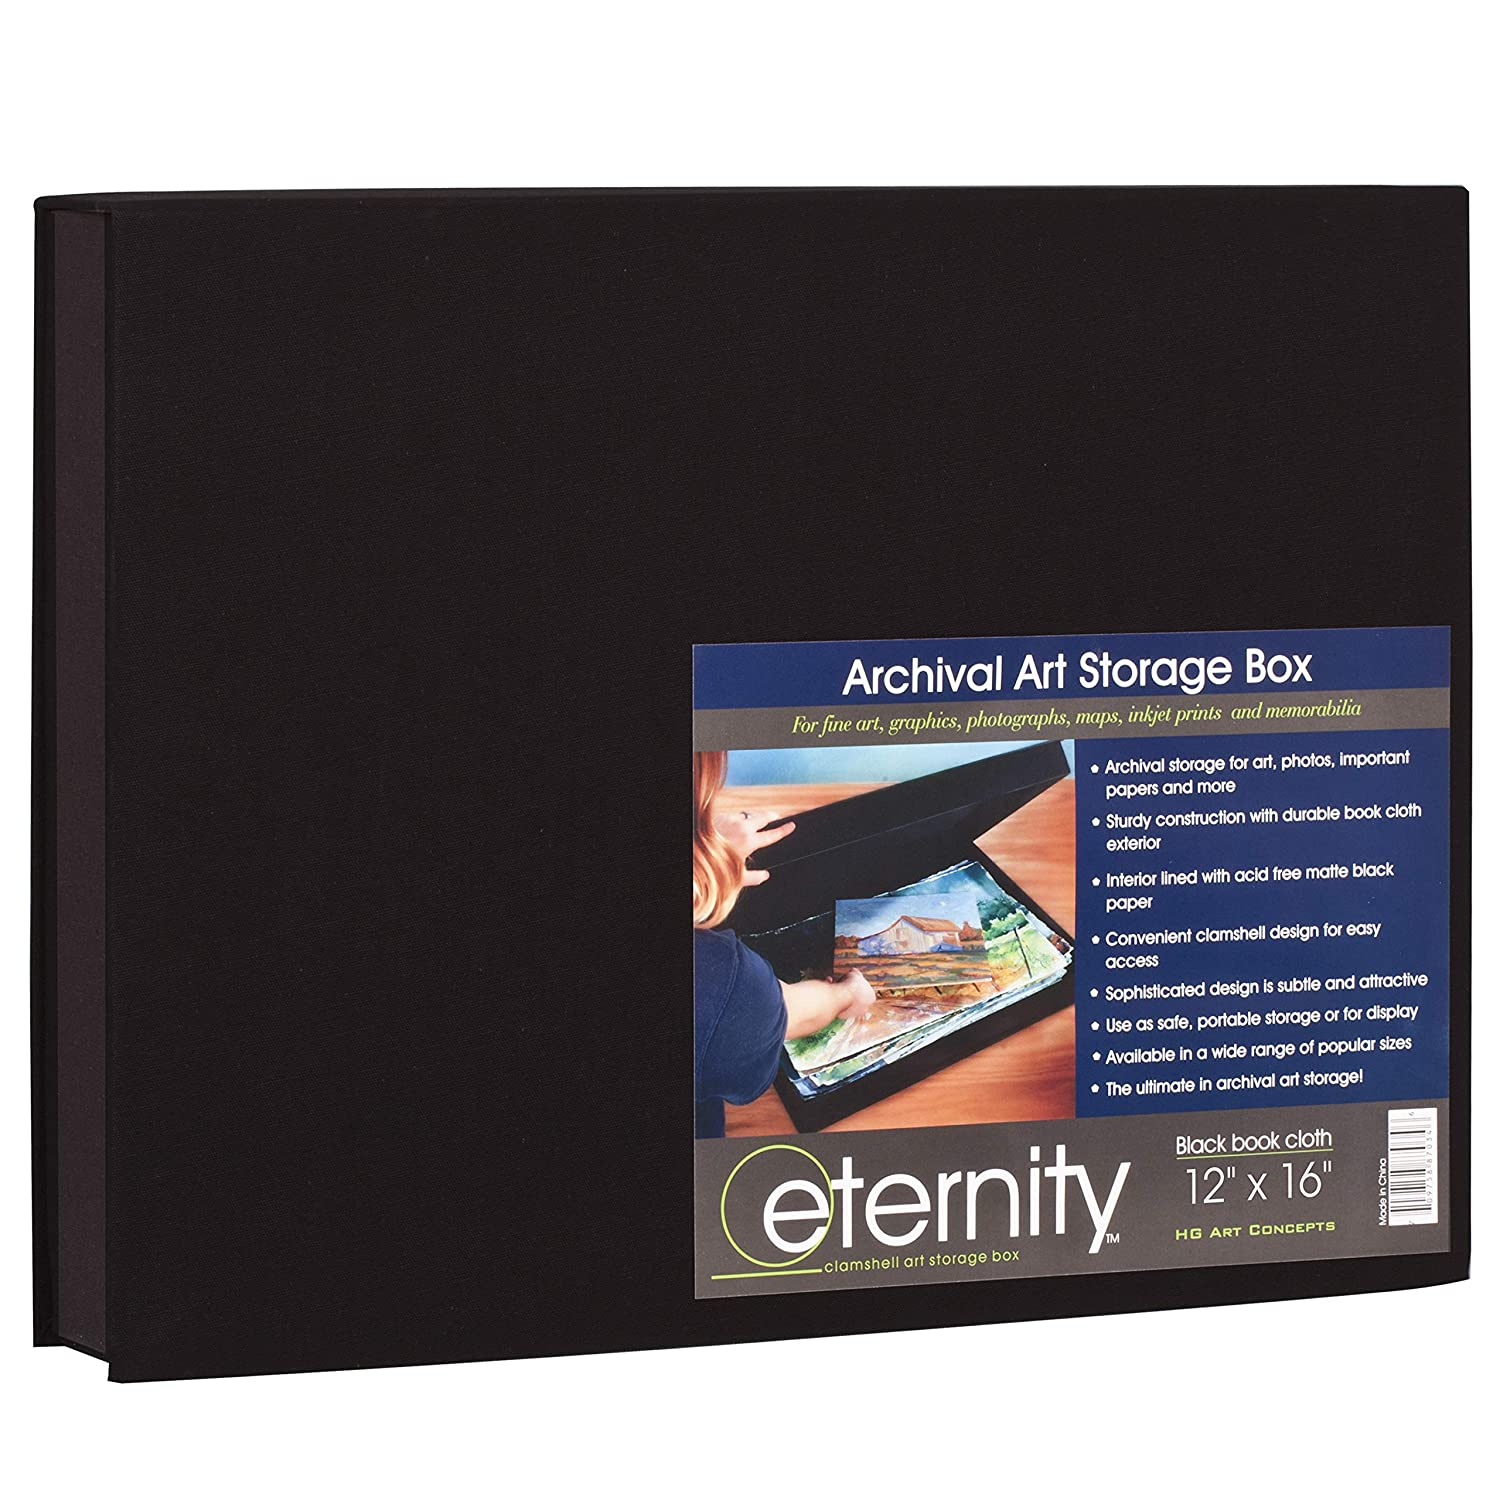 Black - 20 x 24 HG Concepts Art Photo Storage Box Eternity Archival Clamshell Box for Storing Artwork Photos /& Documents Deluxe Acid-Free Sturdy /& Lined with Archival Paper